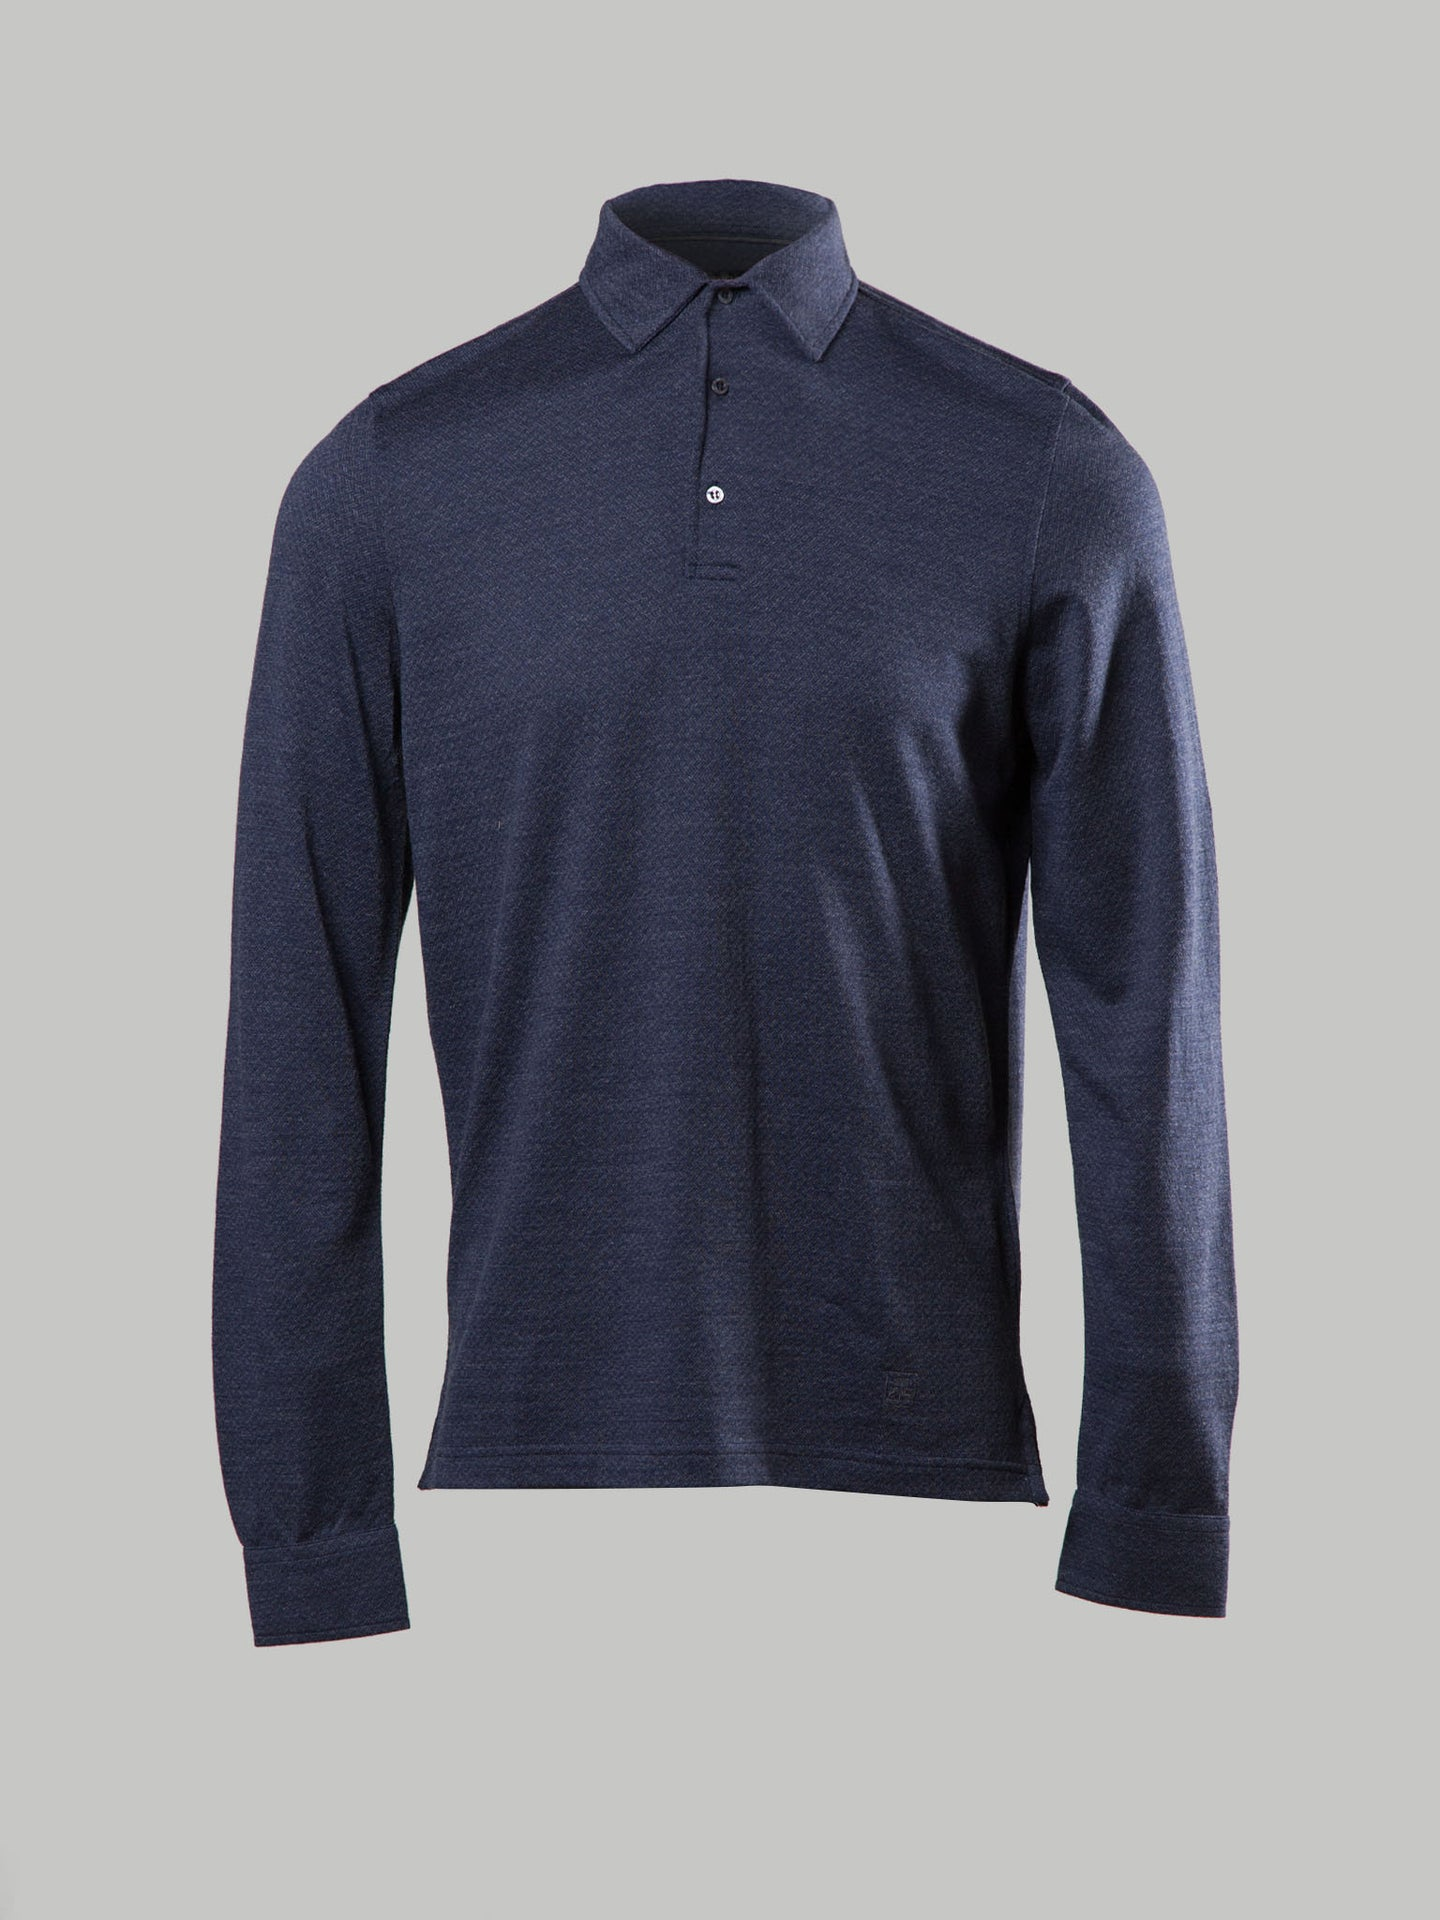 Corneliani Herringbone Polo (Blue and Grey)